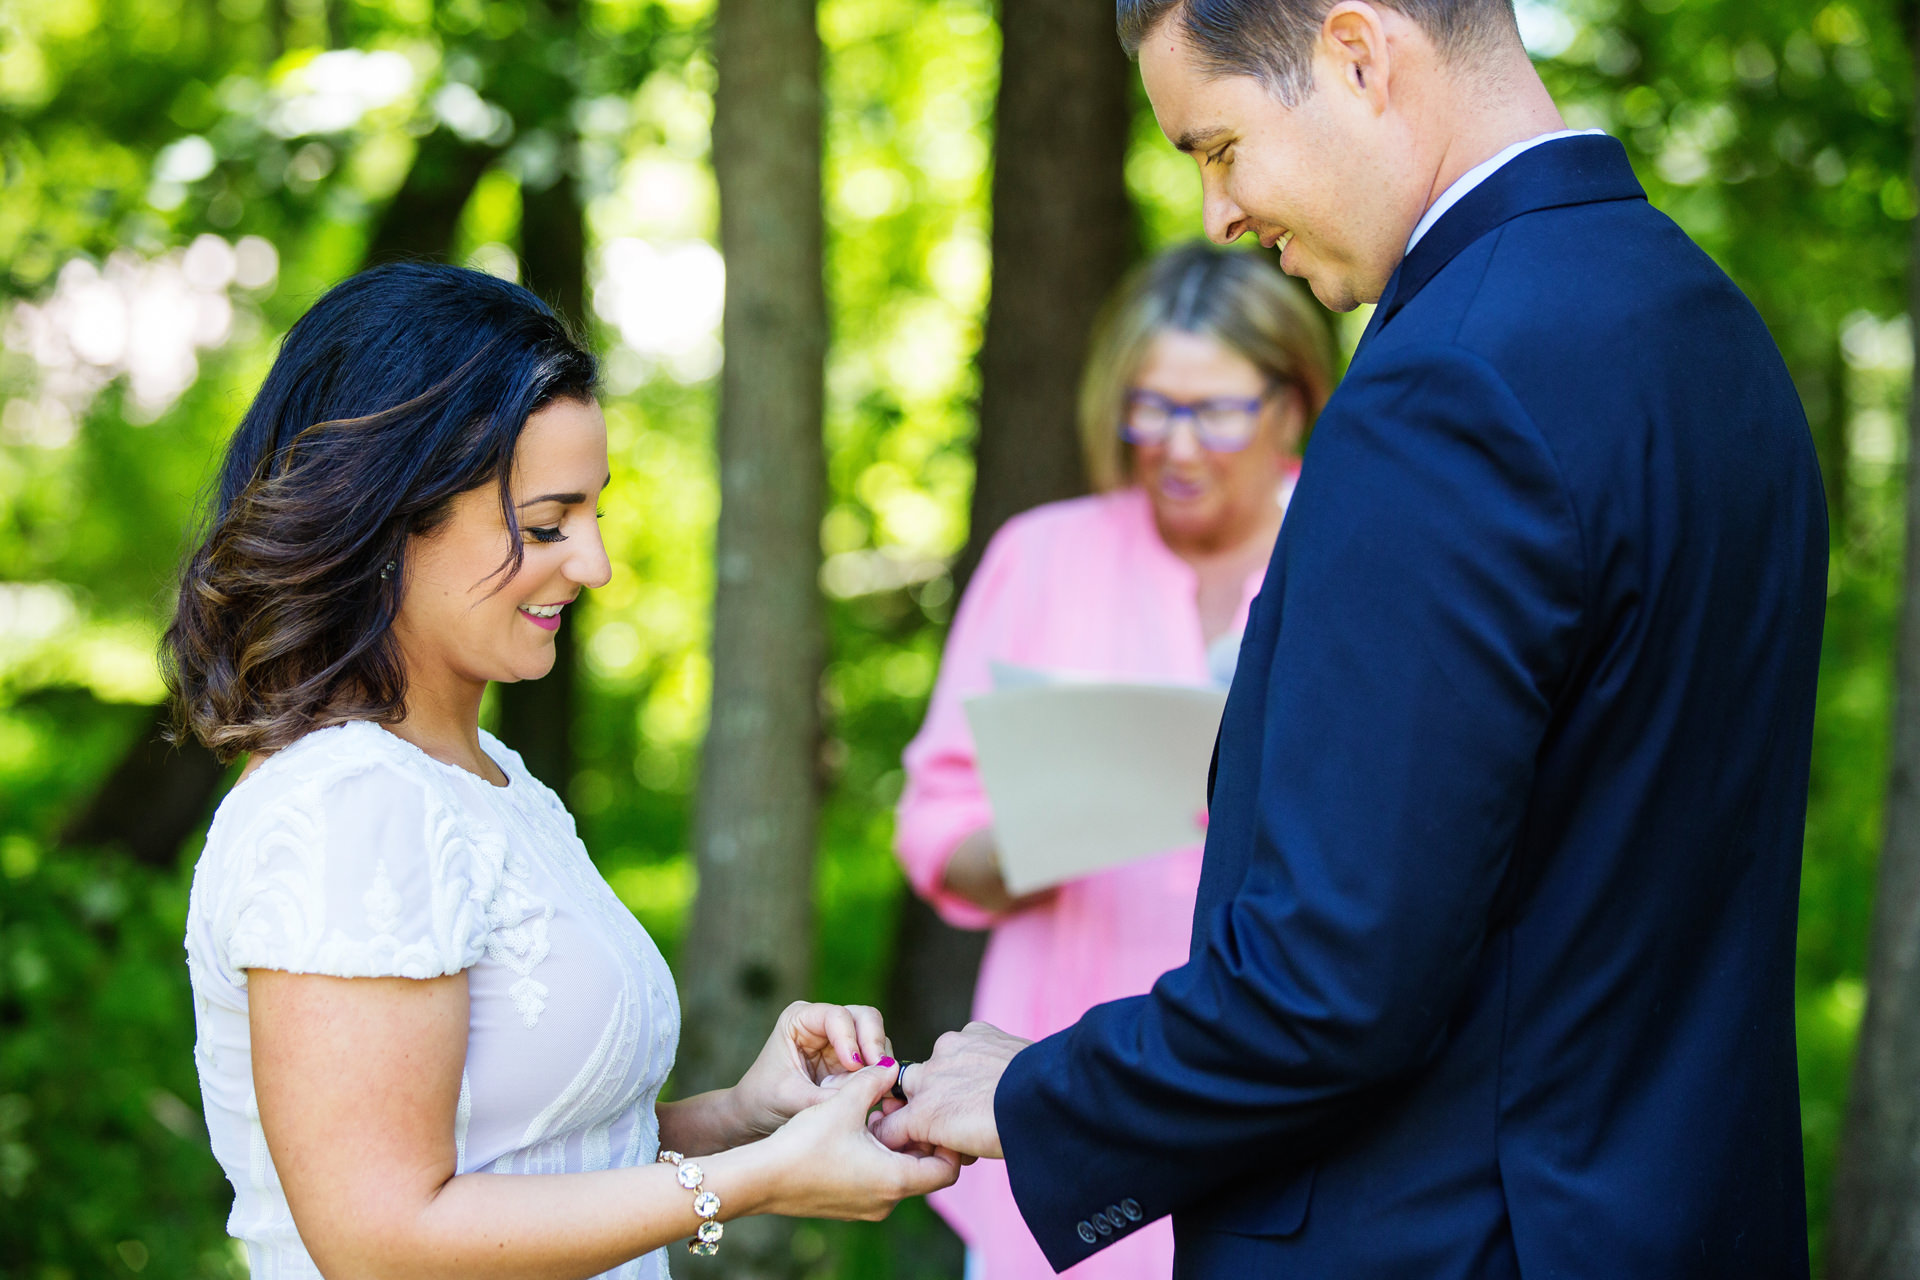 NJ Outdoor Elopement Photography   The couple smile as they exchange rings